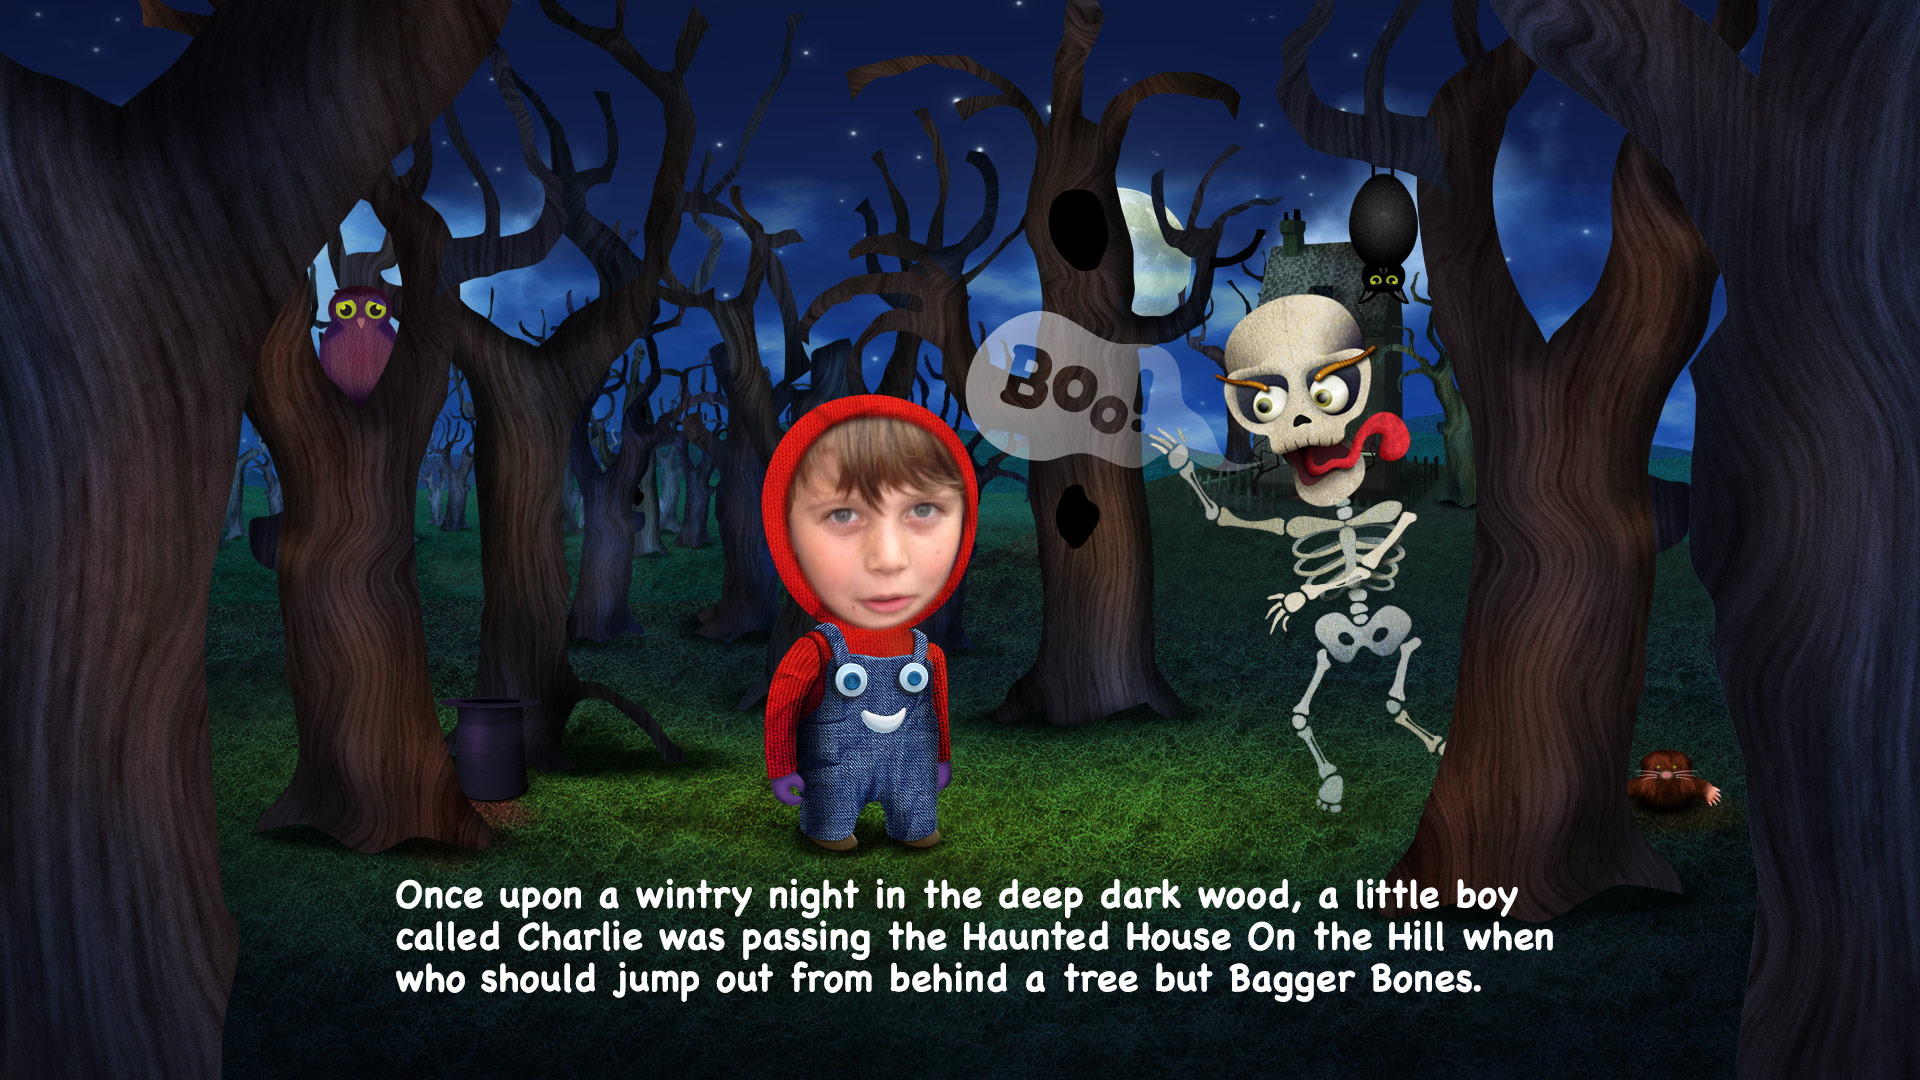 TMW Unlimited launches interactive story app The Haunting of Bagger